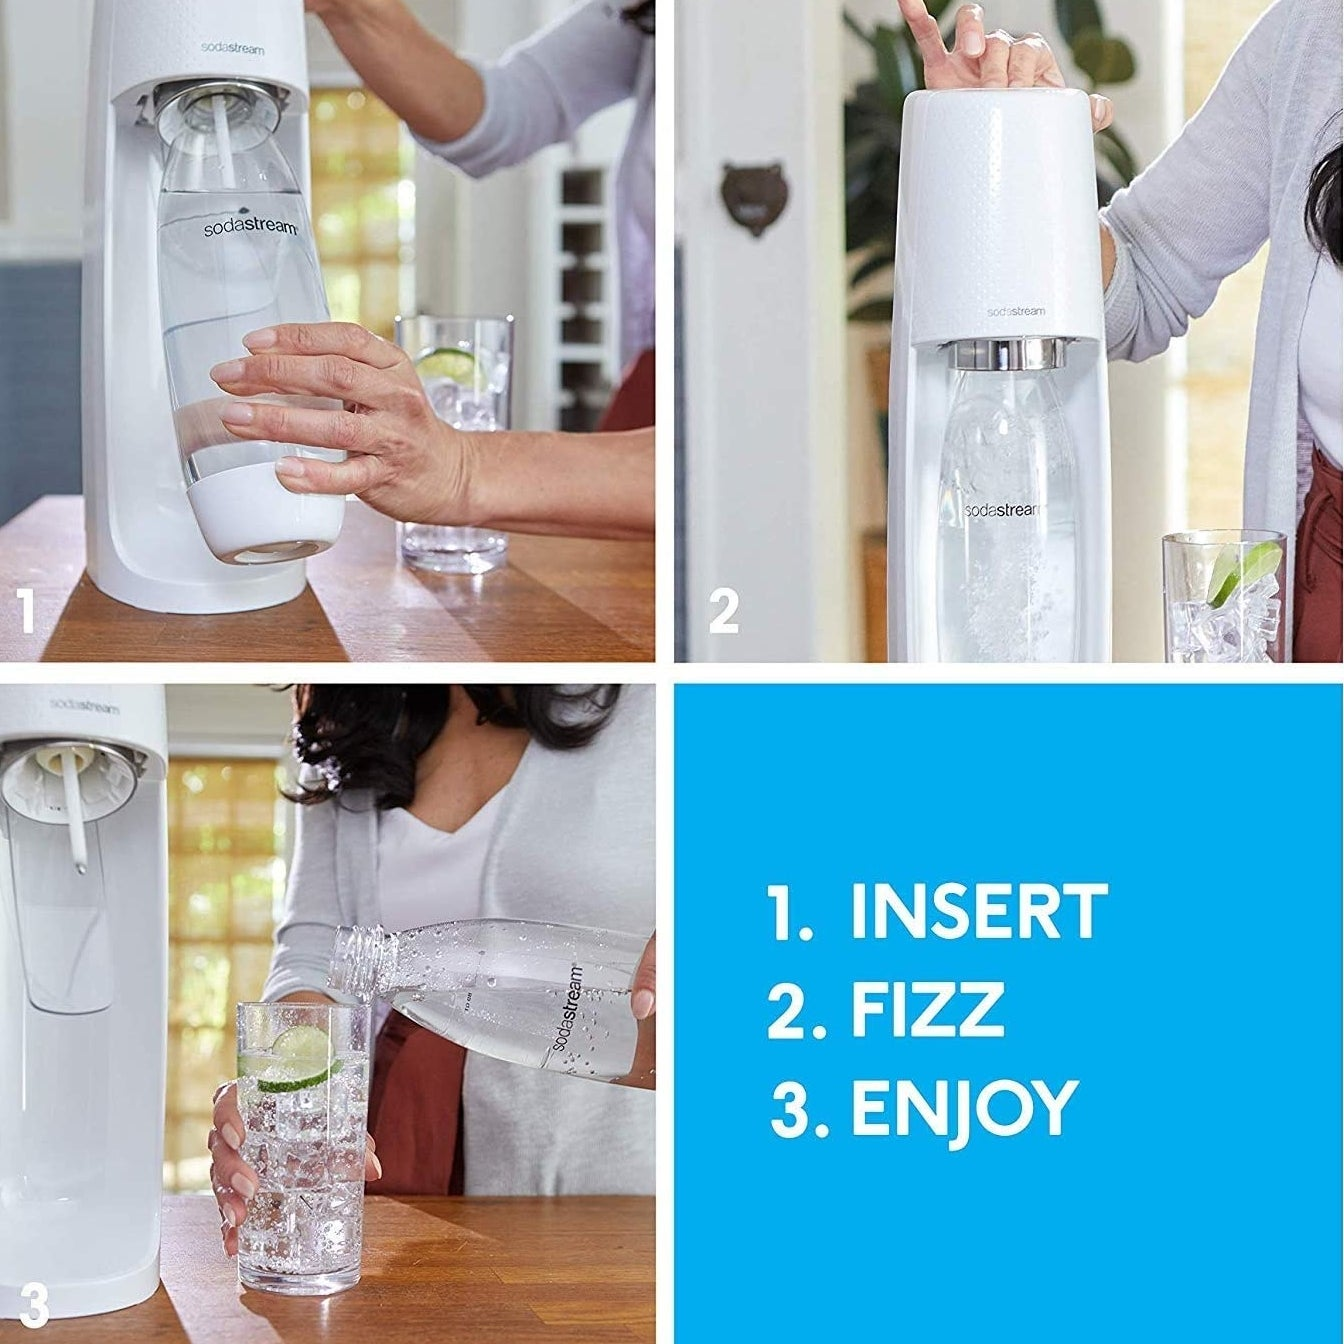 The Soda Stream being used to make seltzer